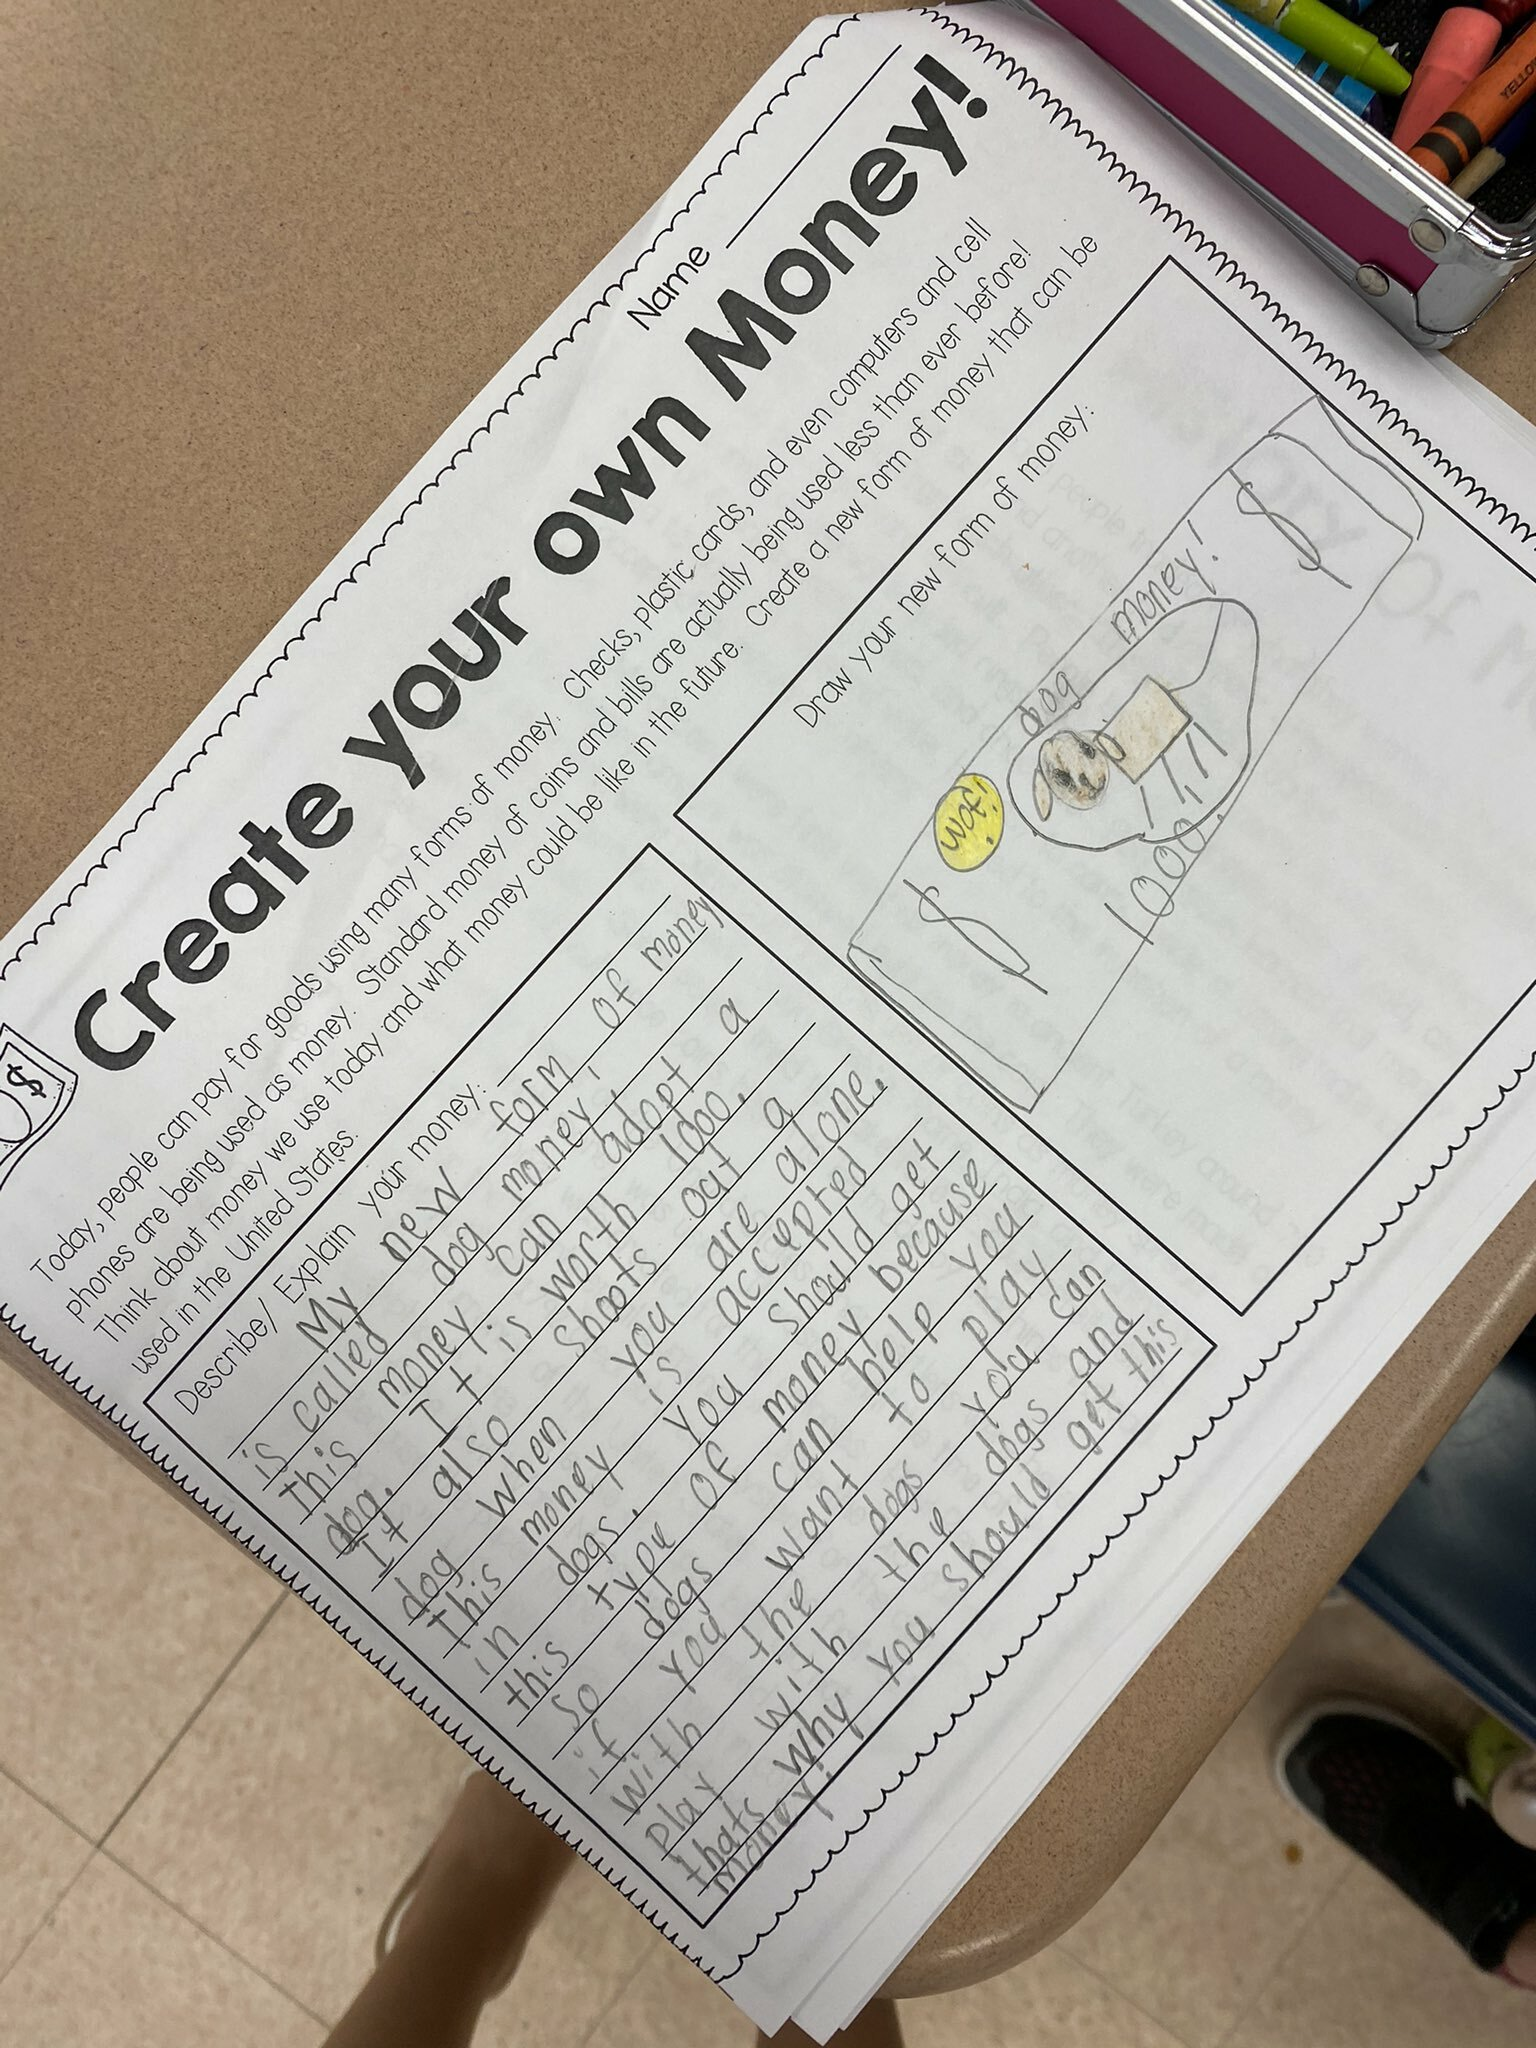 Claire Urizzo's third grade class at Hampton Bays Elementary School recently learned about the U.S. economy and the history of money. They culminated the lesson by designing their own money and writing about how it can be used. They imagined their own dog money, unicorn money and even chocolate money.